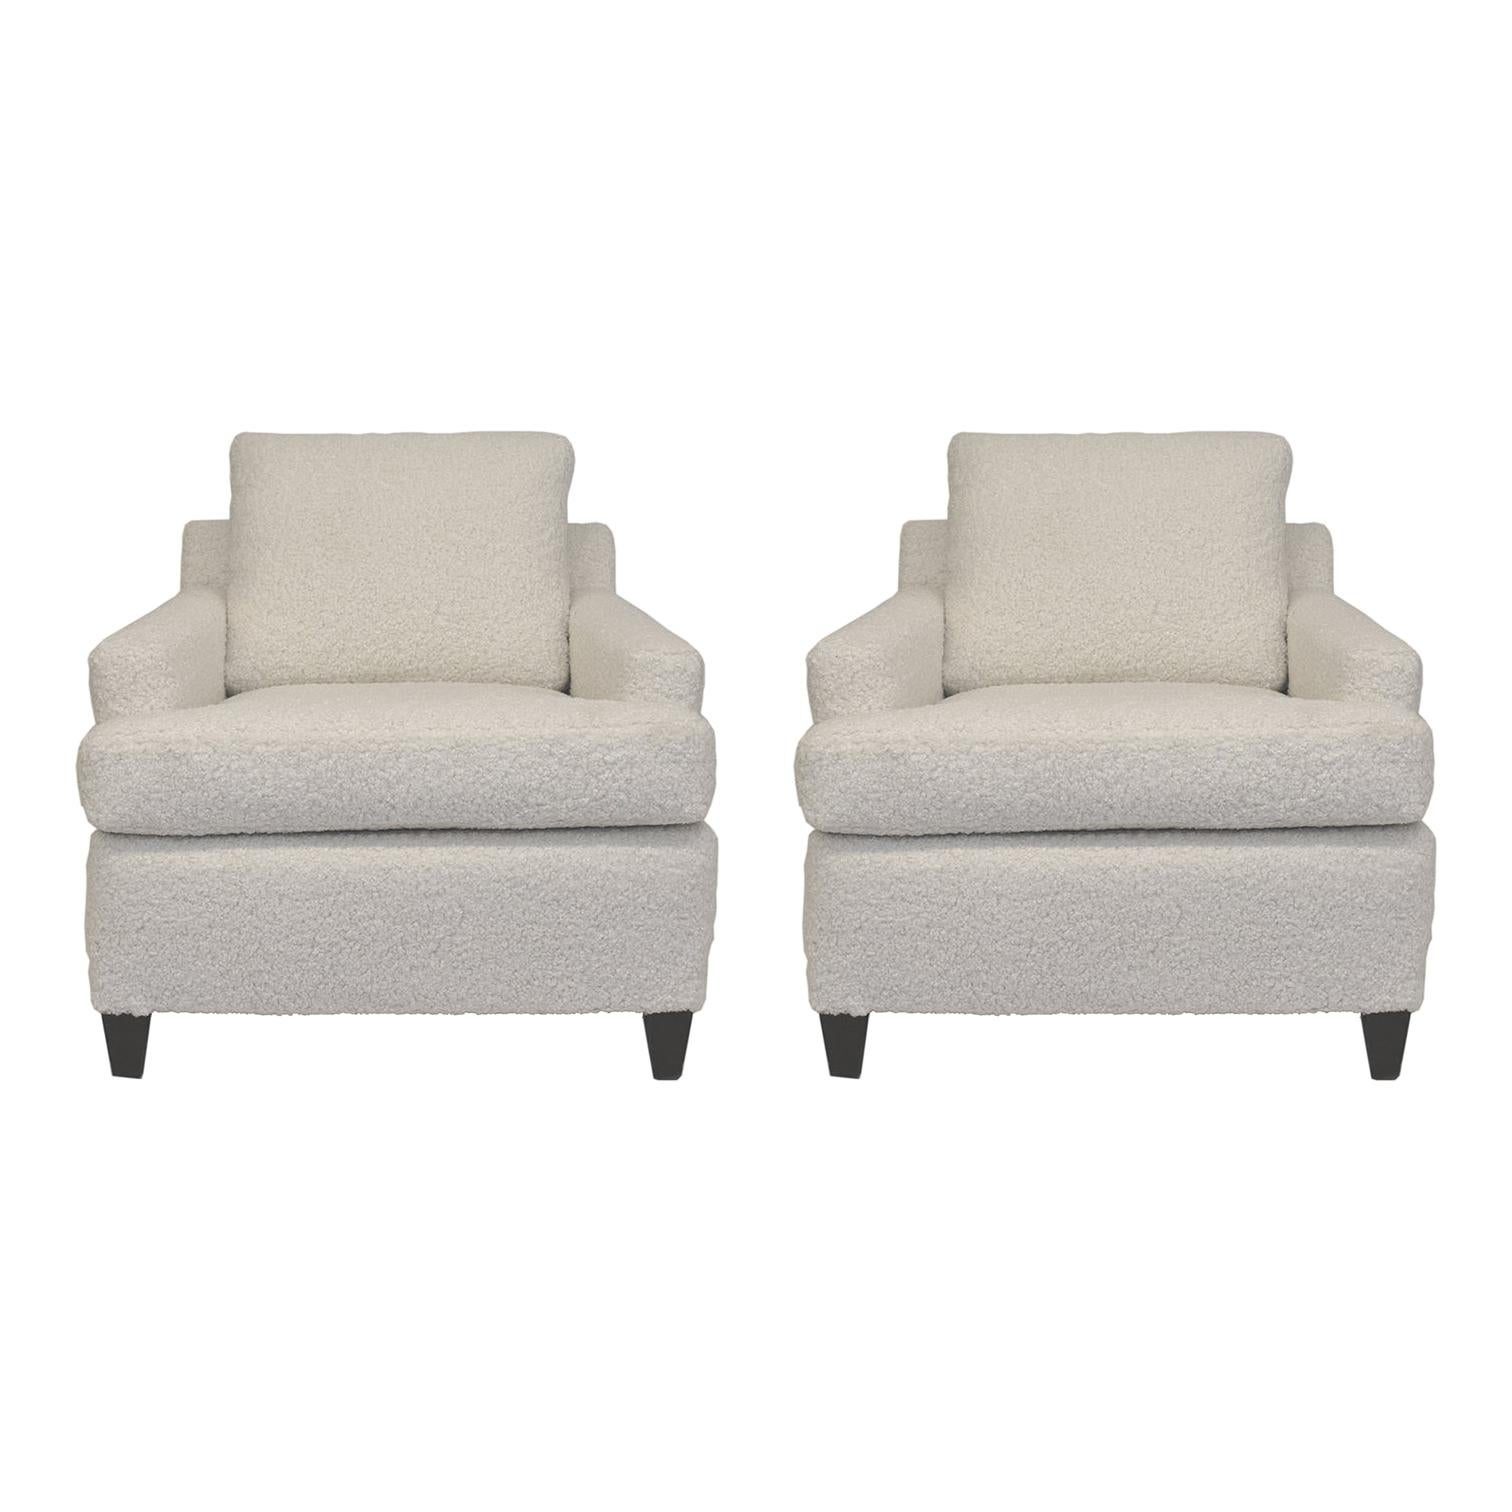 Pair 1950s Wormley Style Club Chairs in Faux Shearling